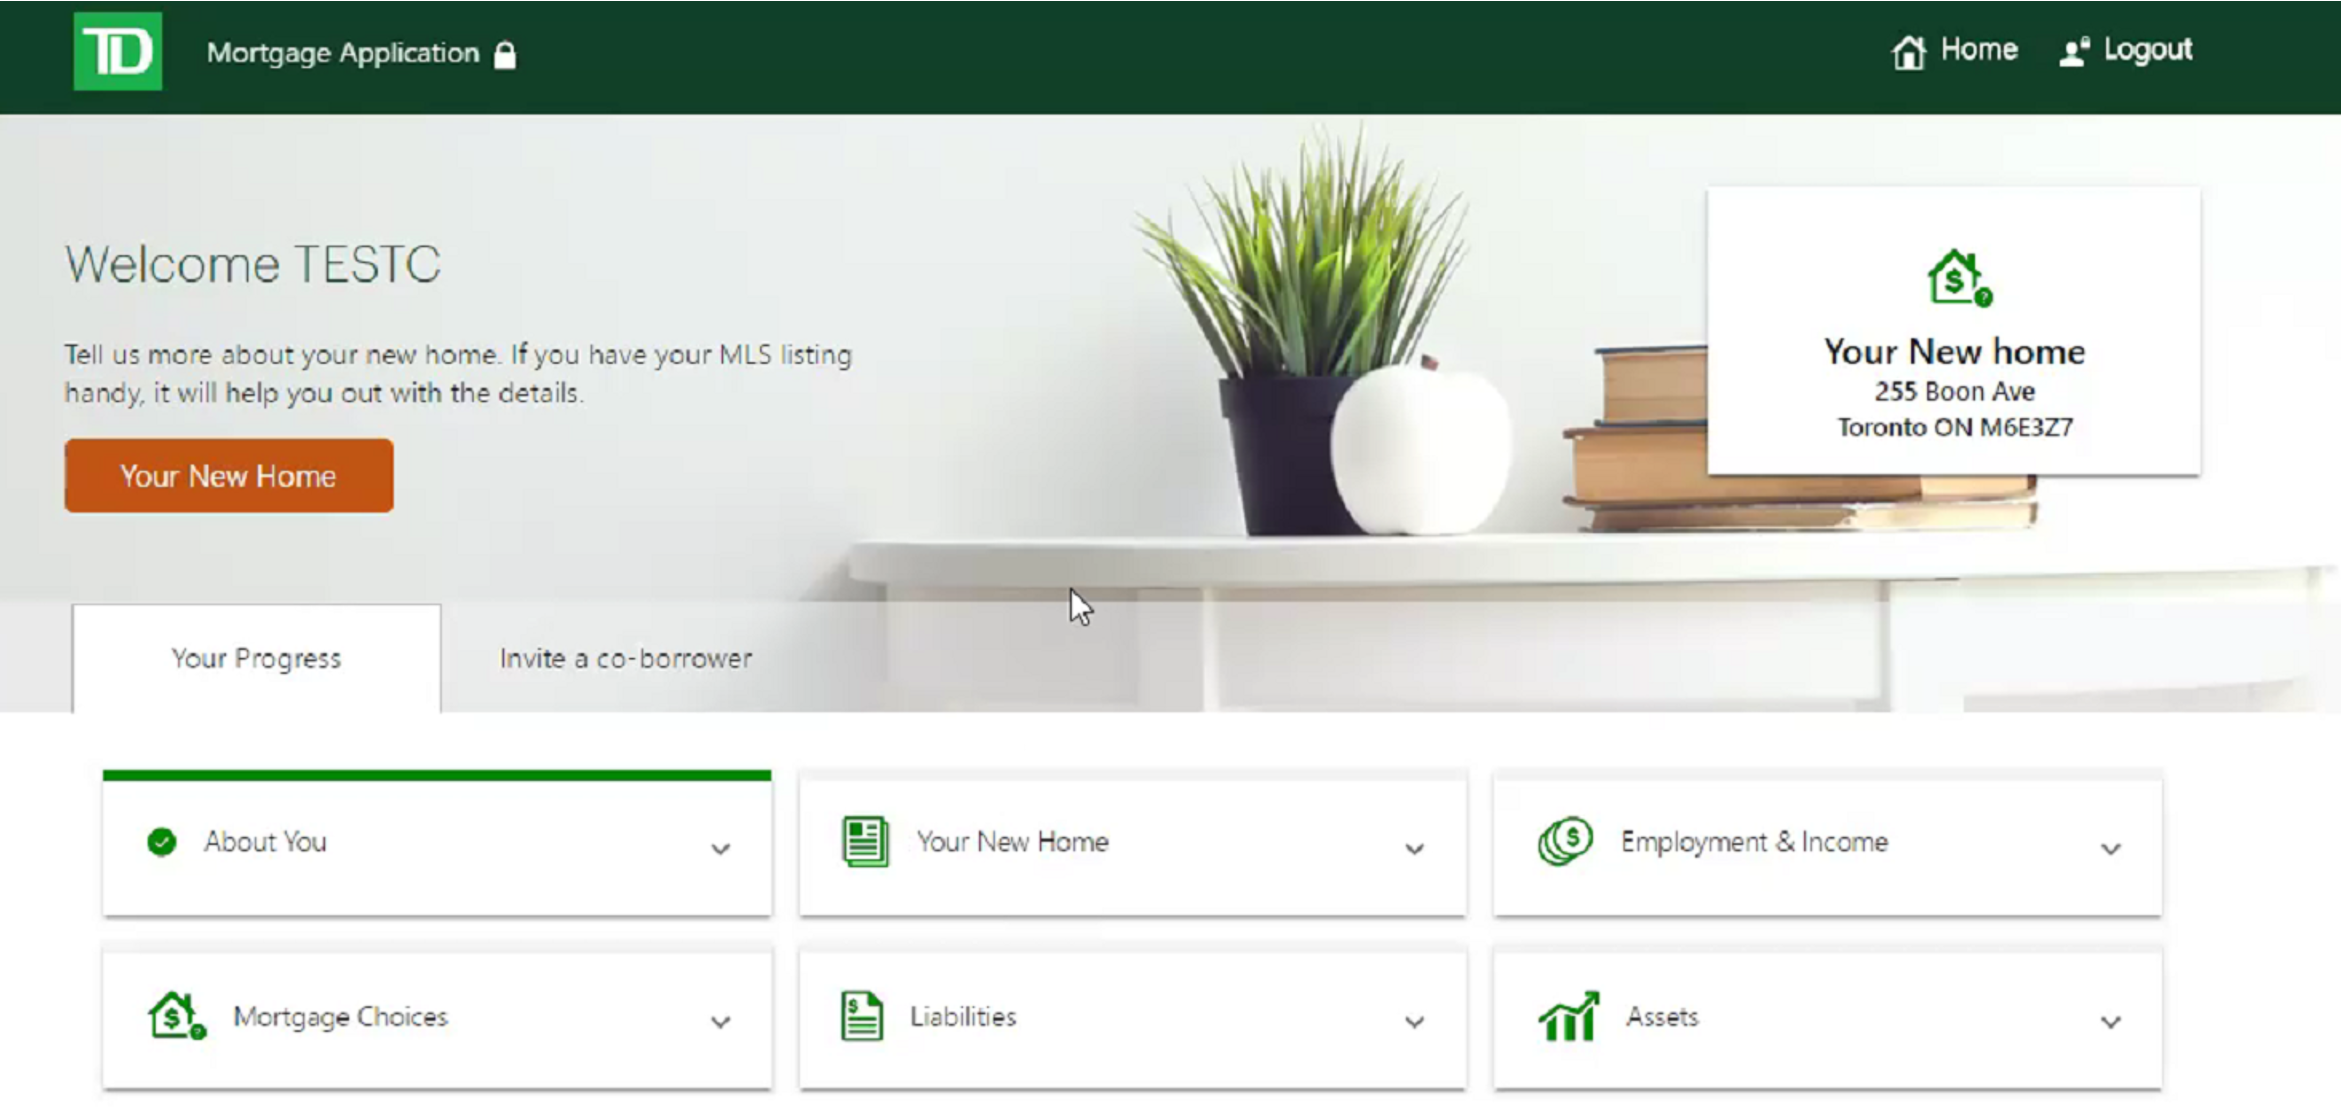 TD bank digital mortgage platform